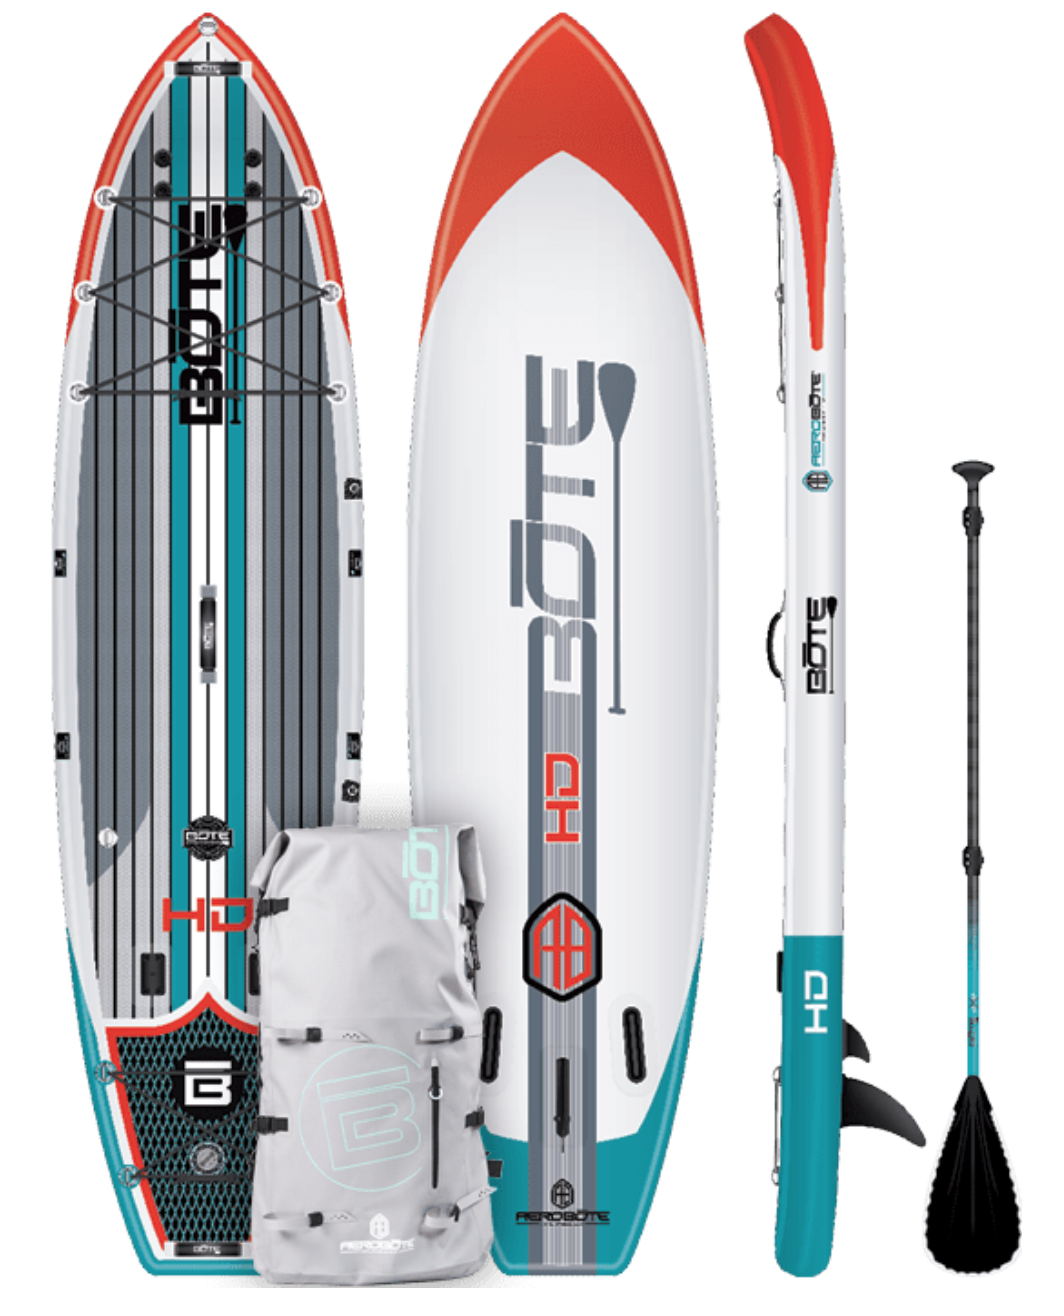 Bote HD Aero Full Trax Inflatable SUP